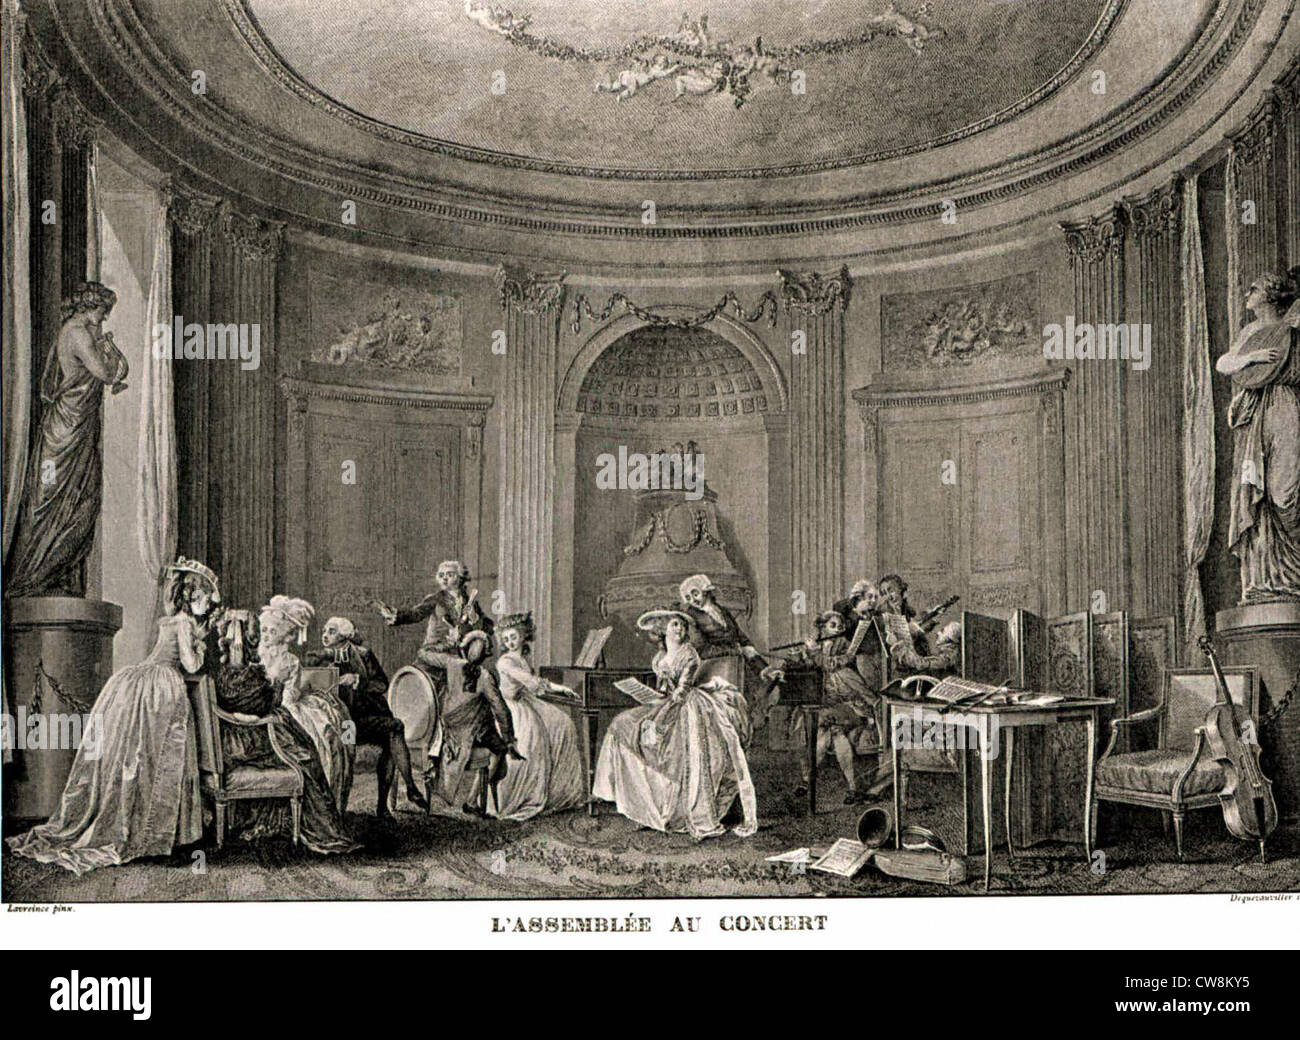 Engraving by Dequevauviller from Lavreince, genre scene - Stock Image